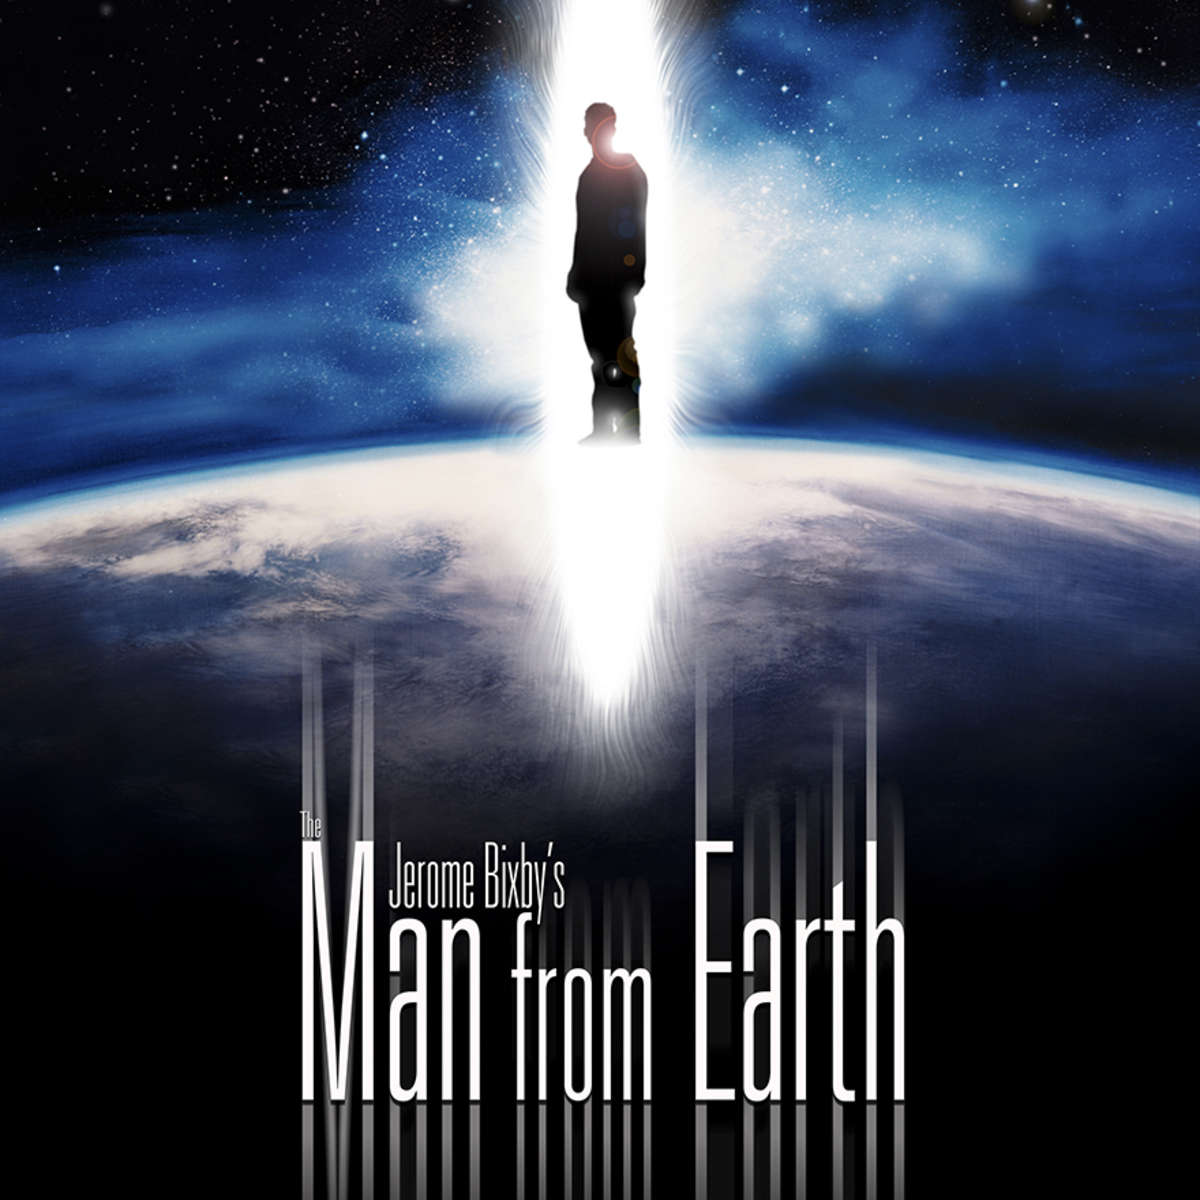 The-Man-From-Earth-poster_0.jpg